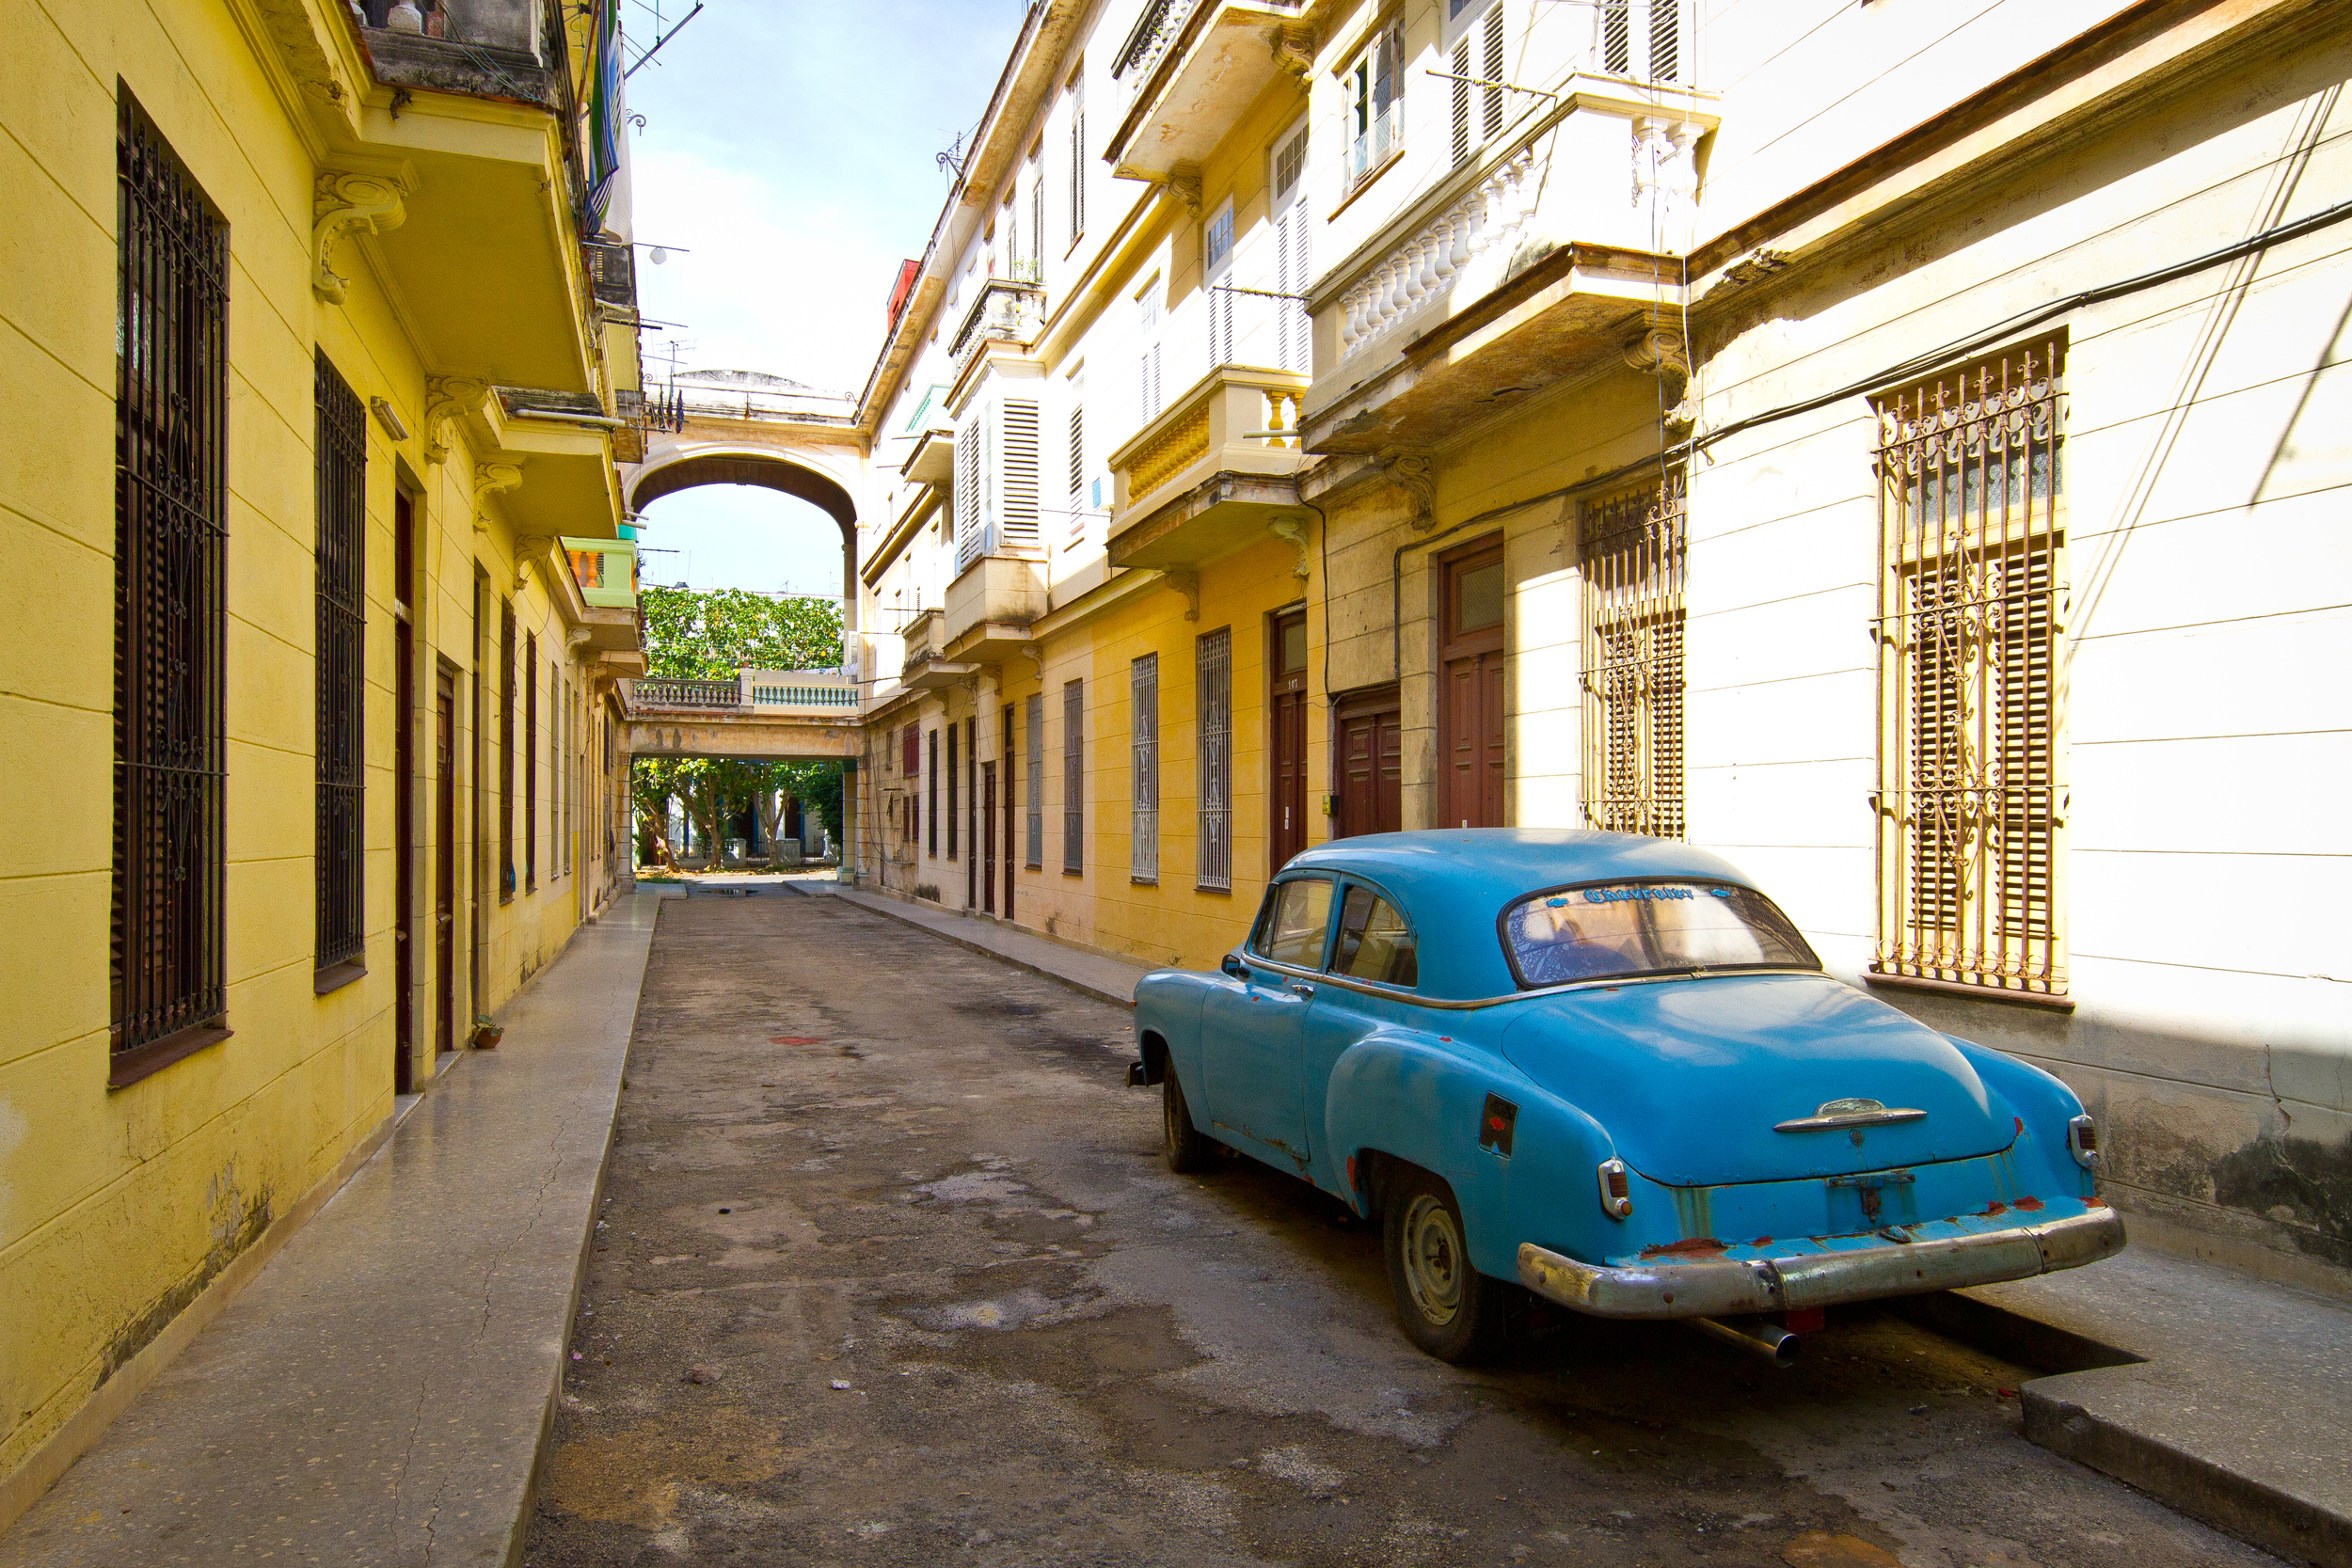 Beautiful architecture, and beautiful vintage American classic, Havana Cuba